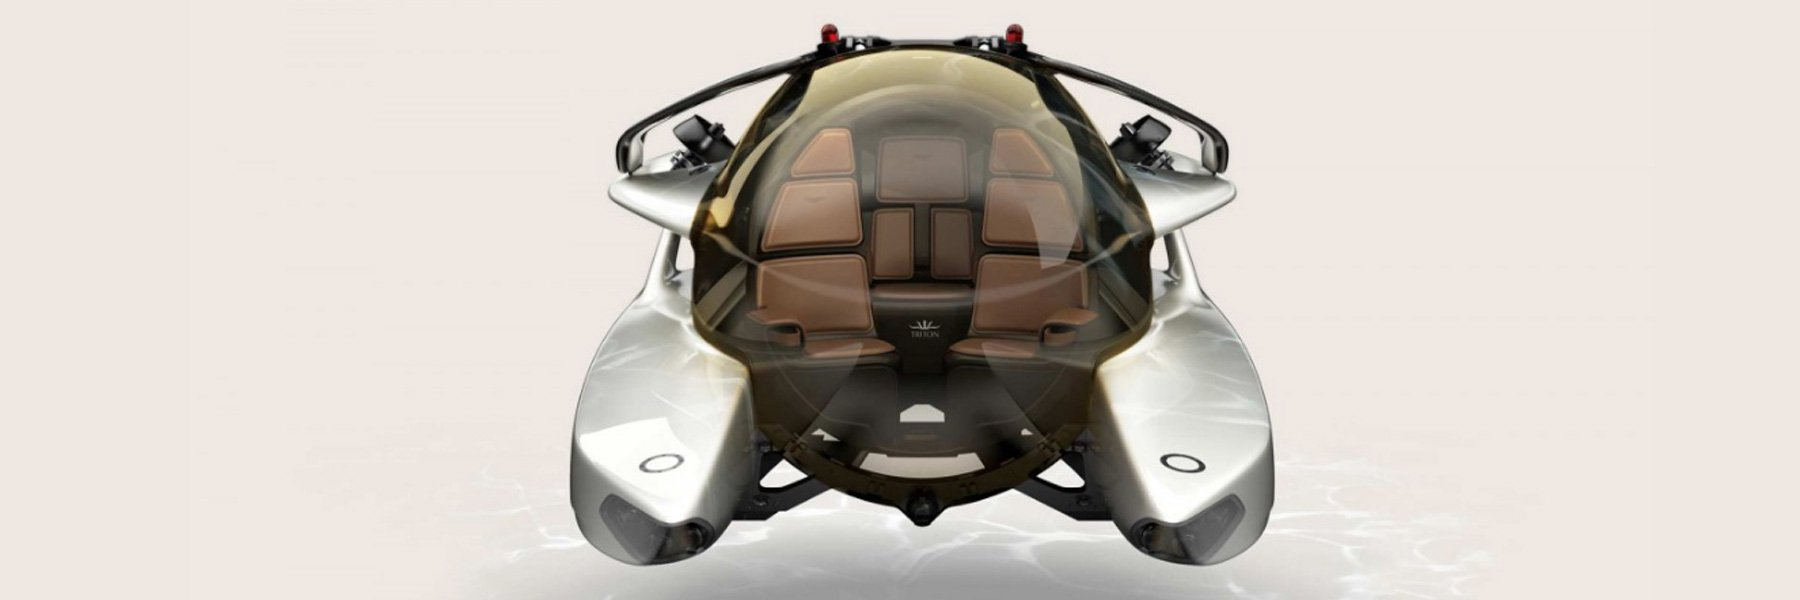 submersible 3